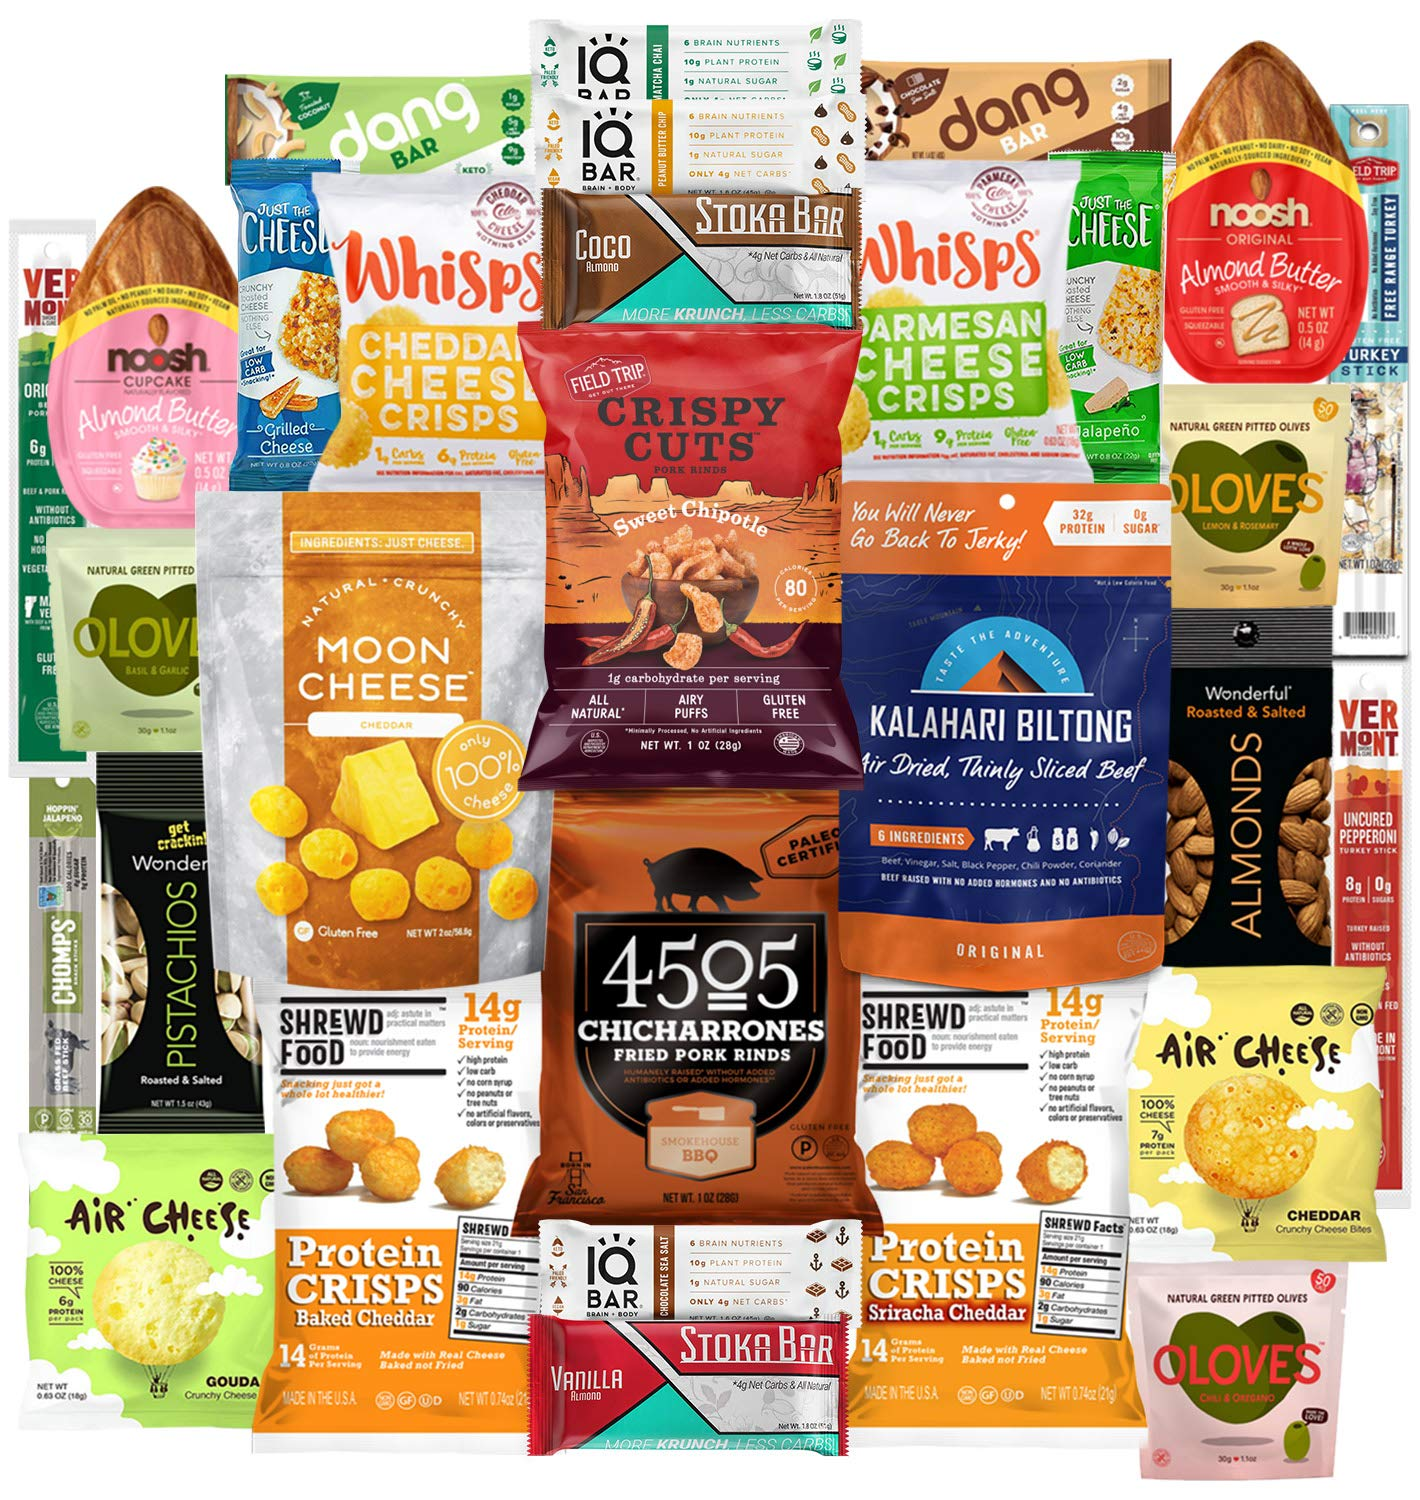 Keto Snacks Care Package (30 Count) : Variety of Ketogenic Friendly & Low Carb - Protein Bars, Cheese Crisps, Grass Fed Meat Sticks Bars, Pork Rinds, Biltong, Nuts, Candy In Healthy Snack Gift Box